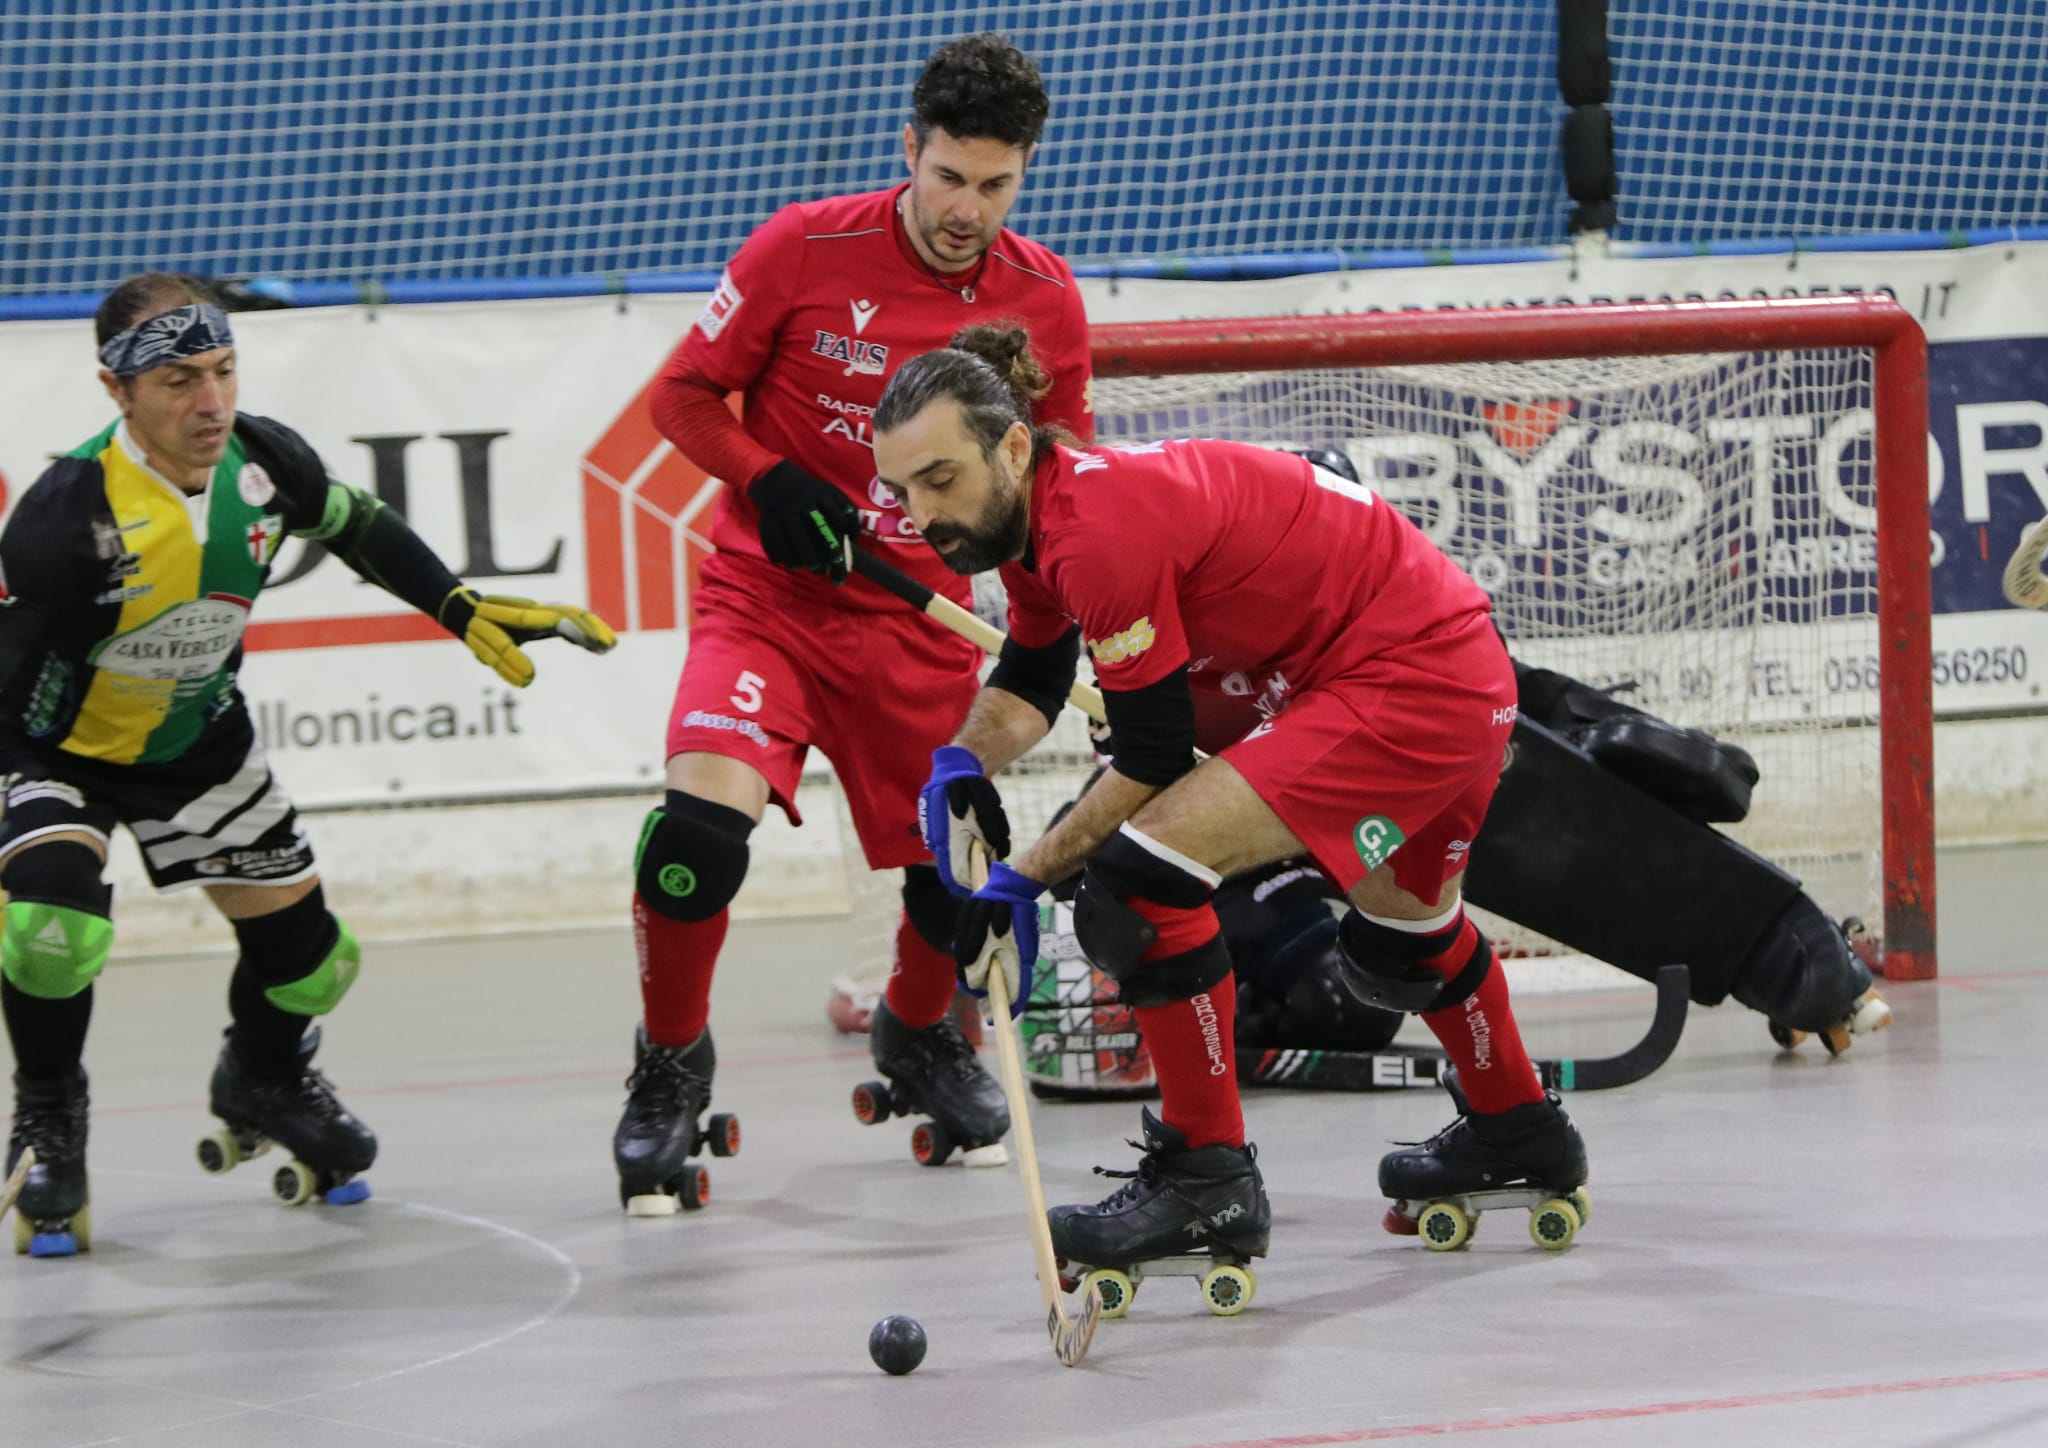 hockey-pista-serie-B-circolo-pattinatori-grosseto-Alice-Vercelli-Matassi-e-Borracelli